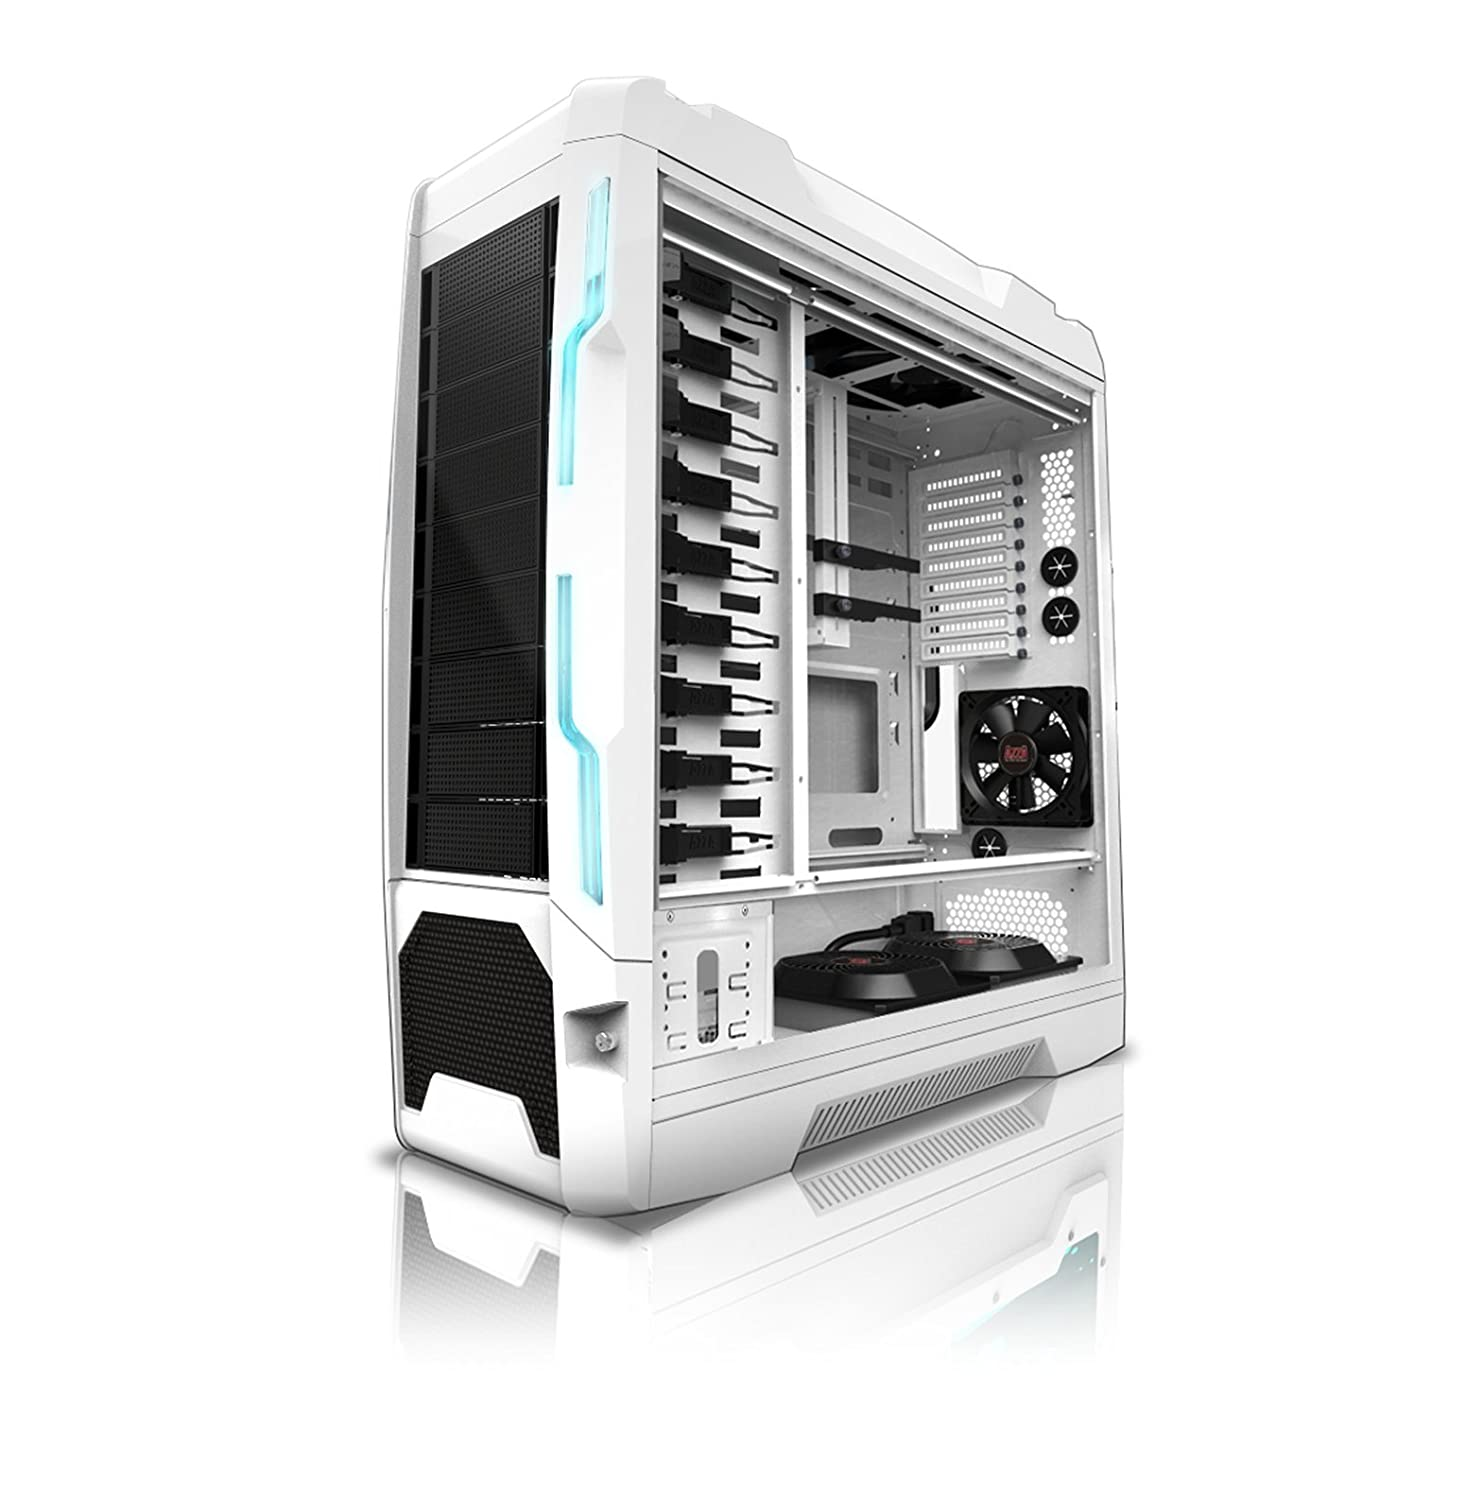 Amazon.com: Azza Genesis 9000W Full Tower Case, White (CSAZ-9000W): Computers & Accessories